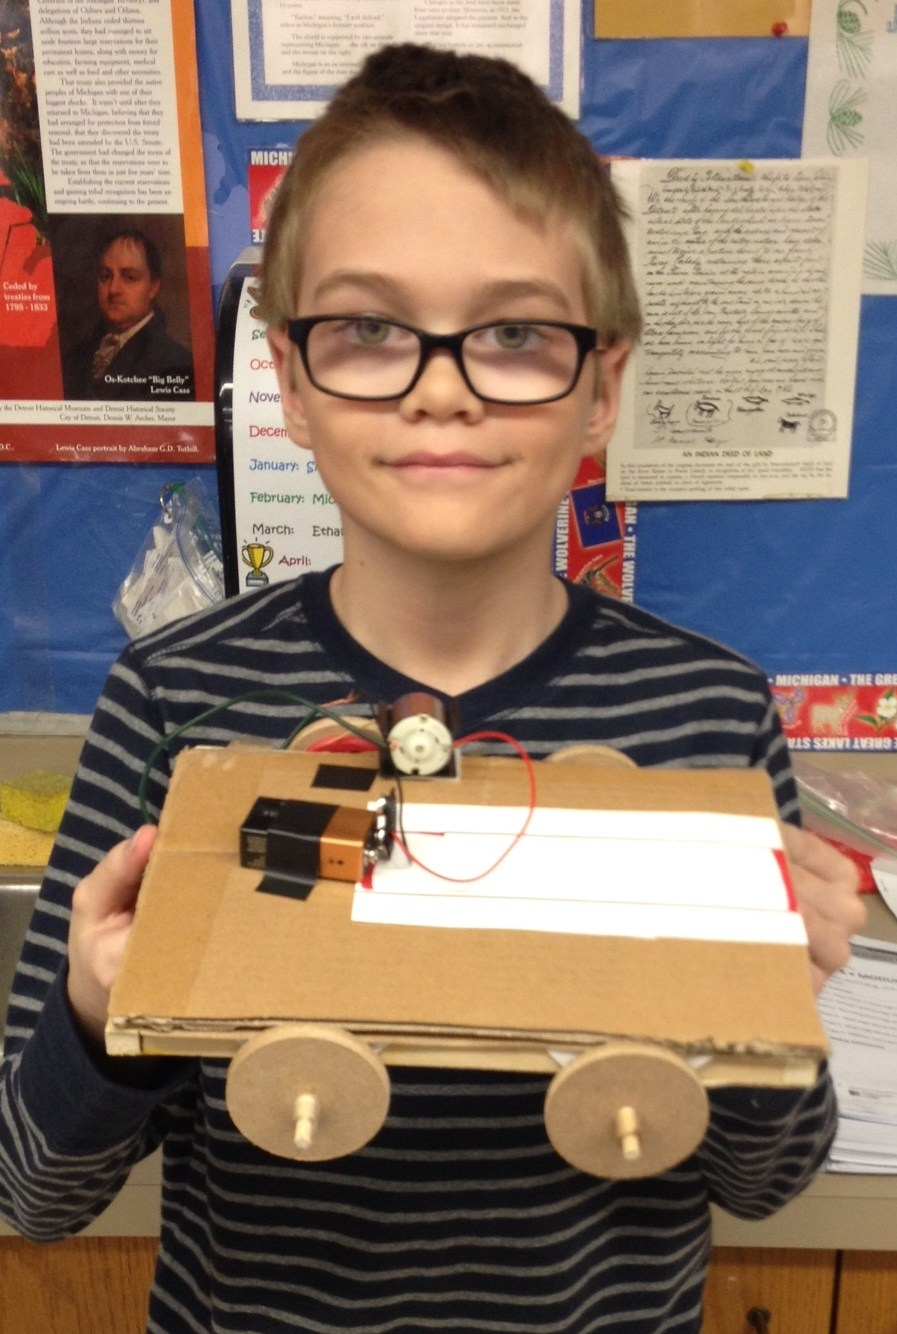 boy with battery project